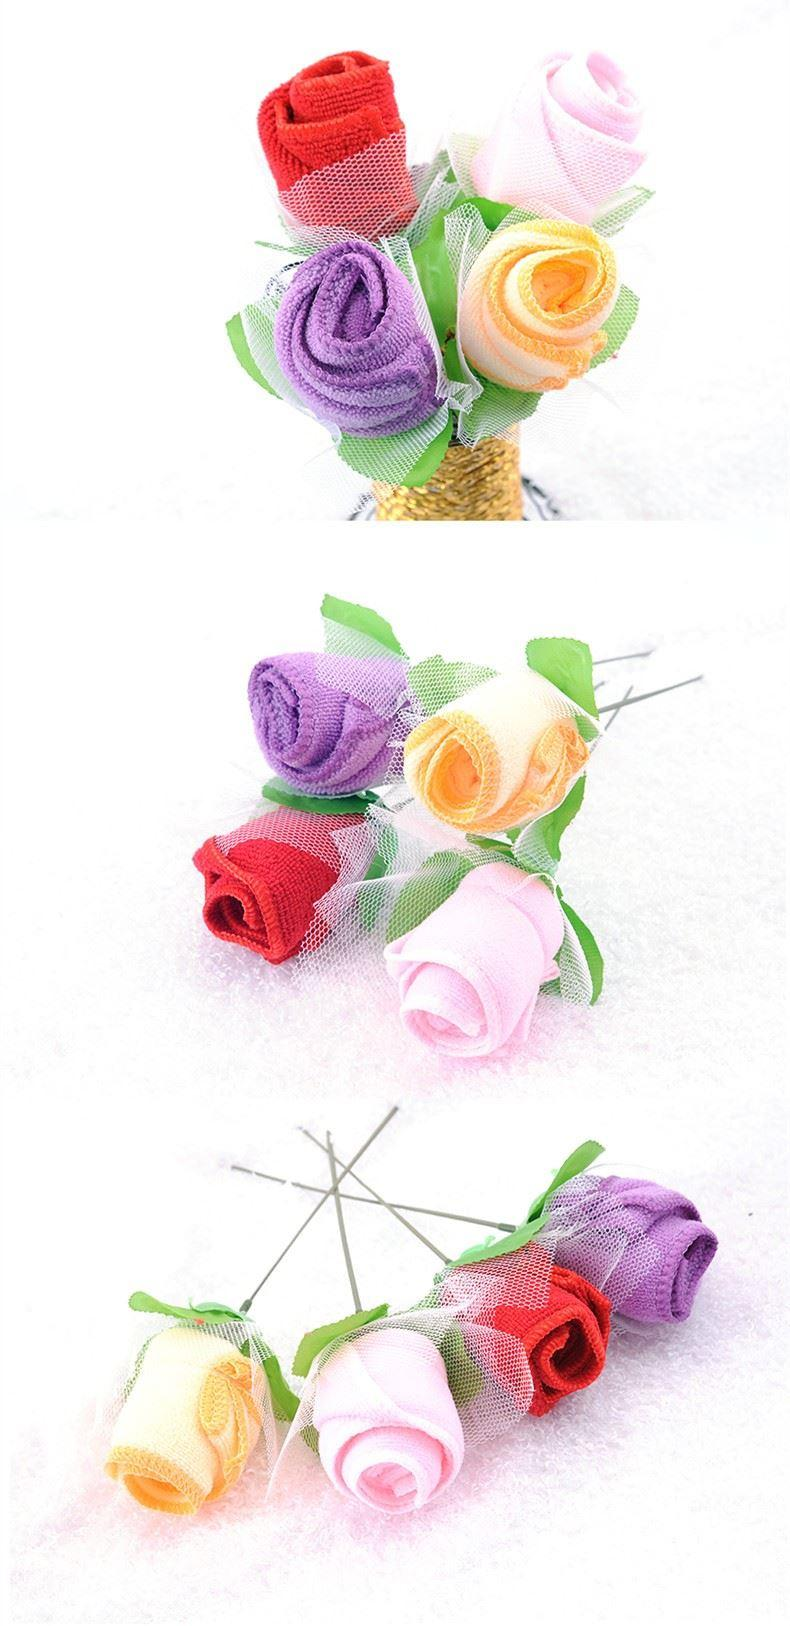 wedding towel ice cream rose flower hand towel for wedding table centerpieces decoration (14)